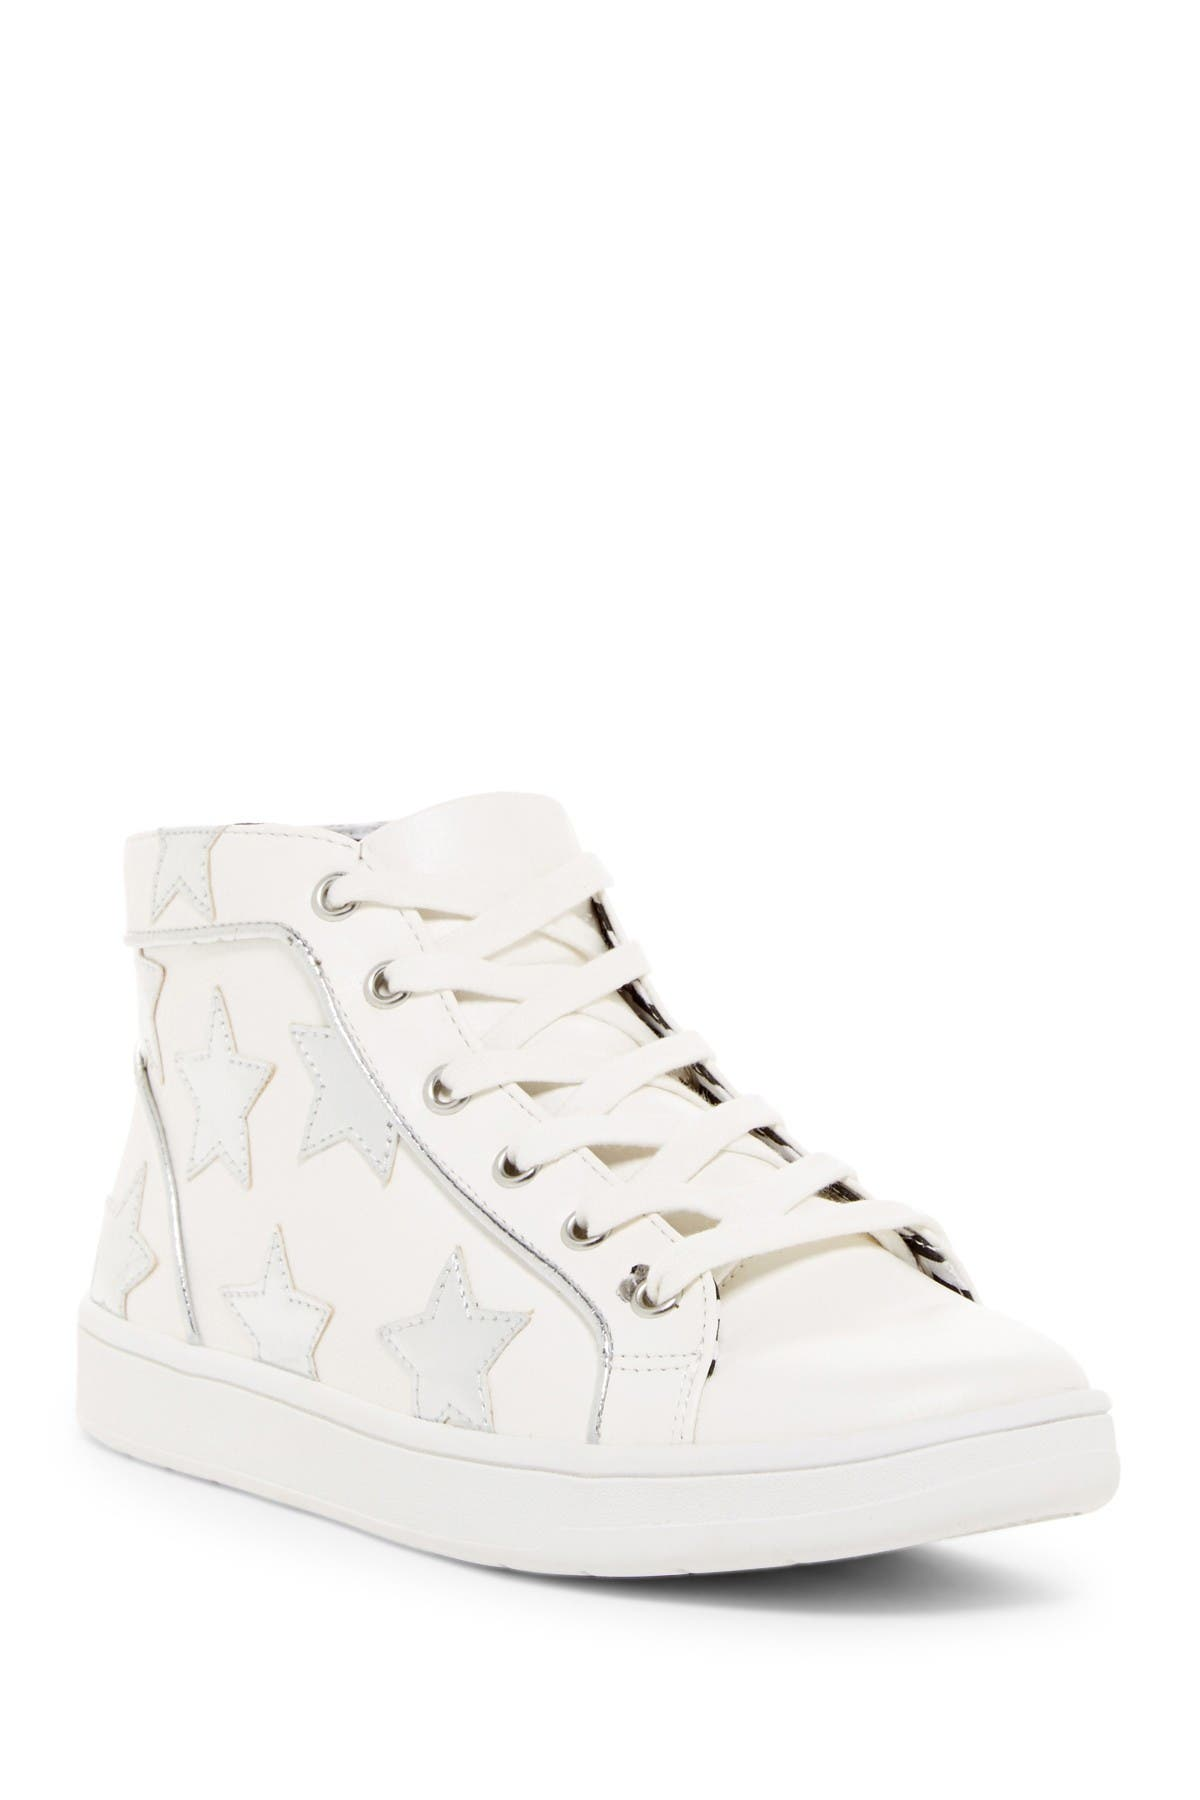 Image of Betsey Johnson Flo Sneaker